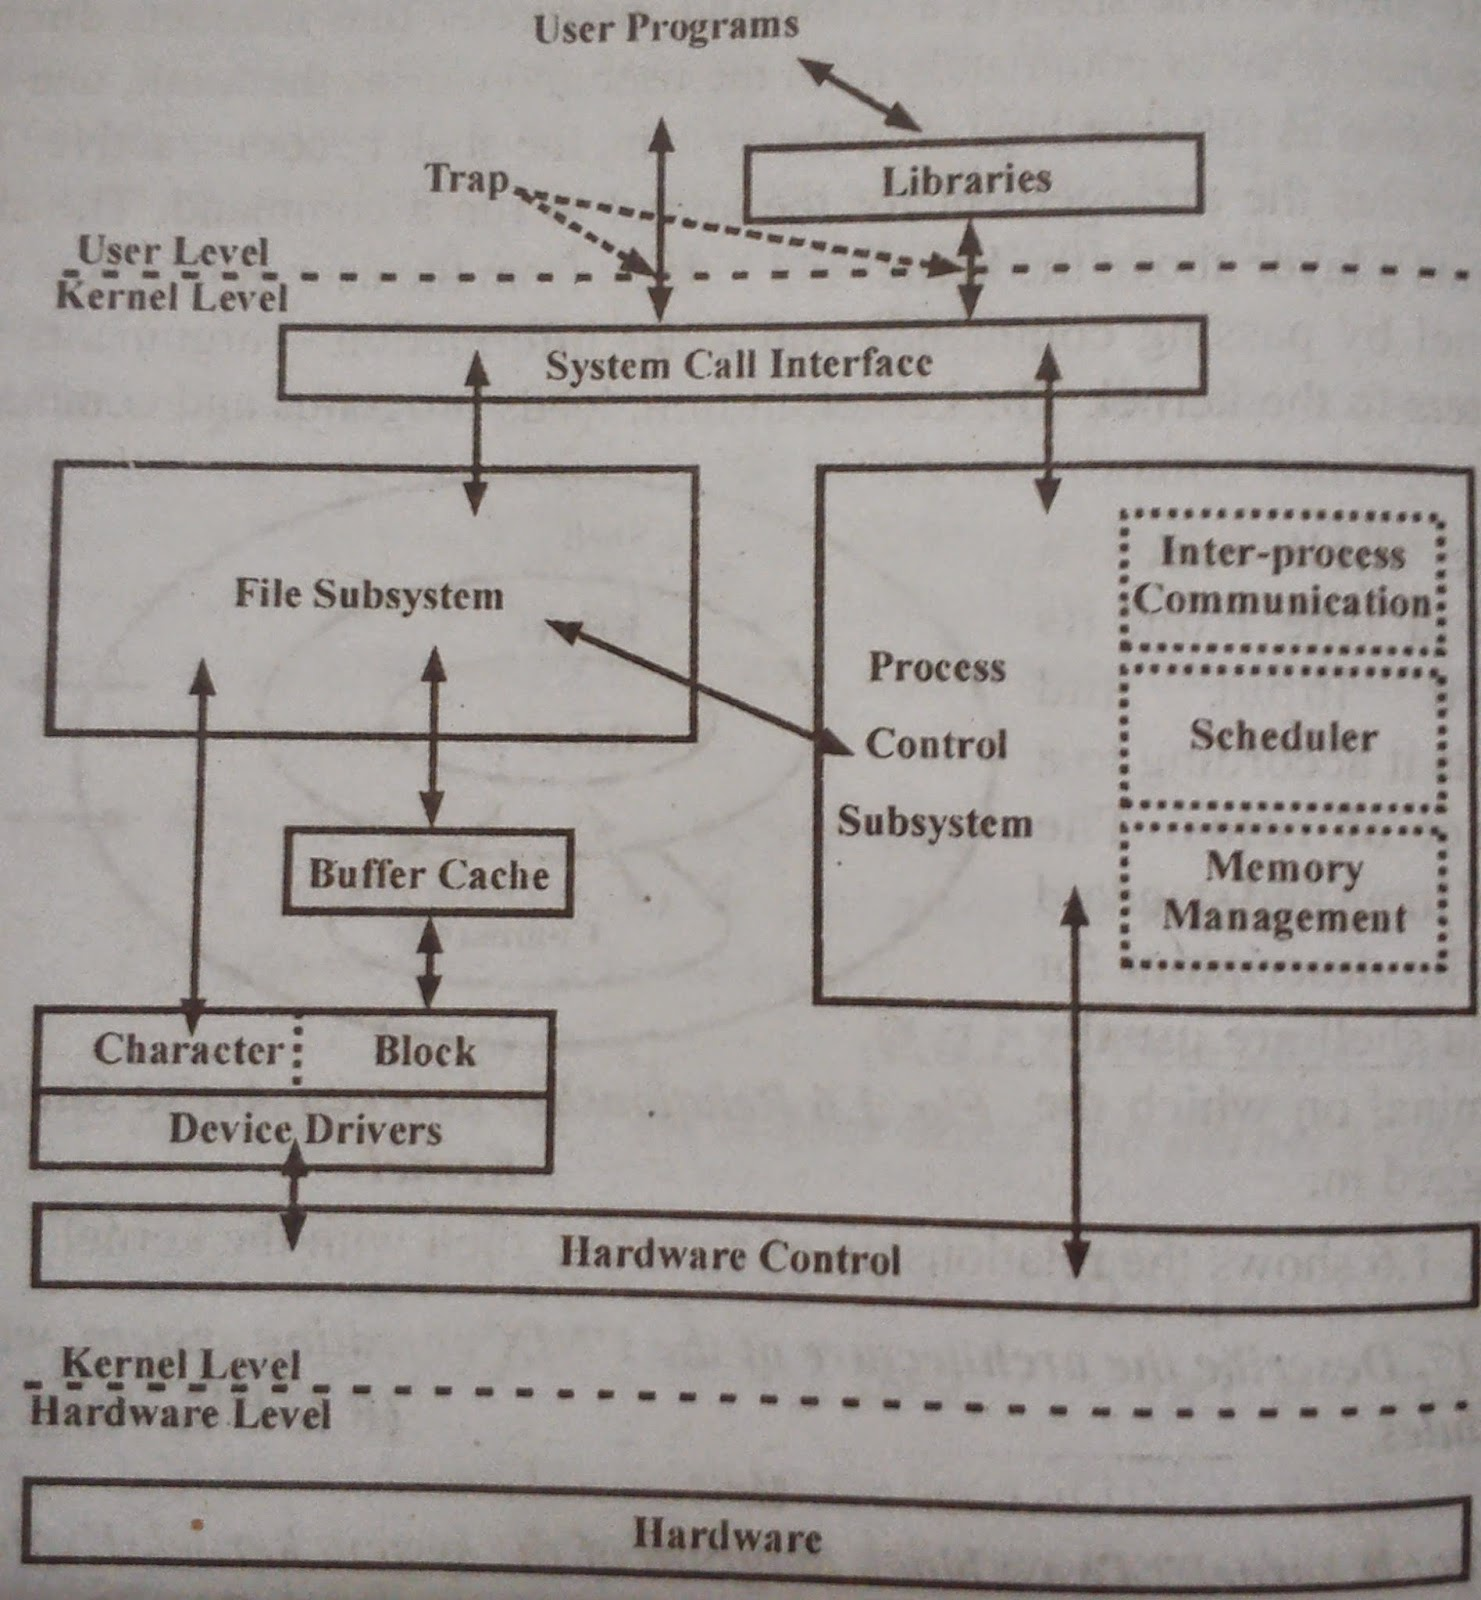 Block diagram of Kernel is given below: